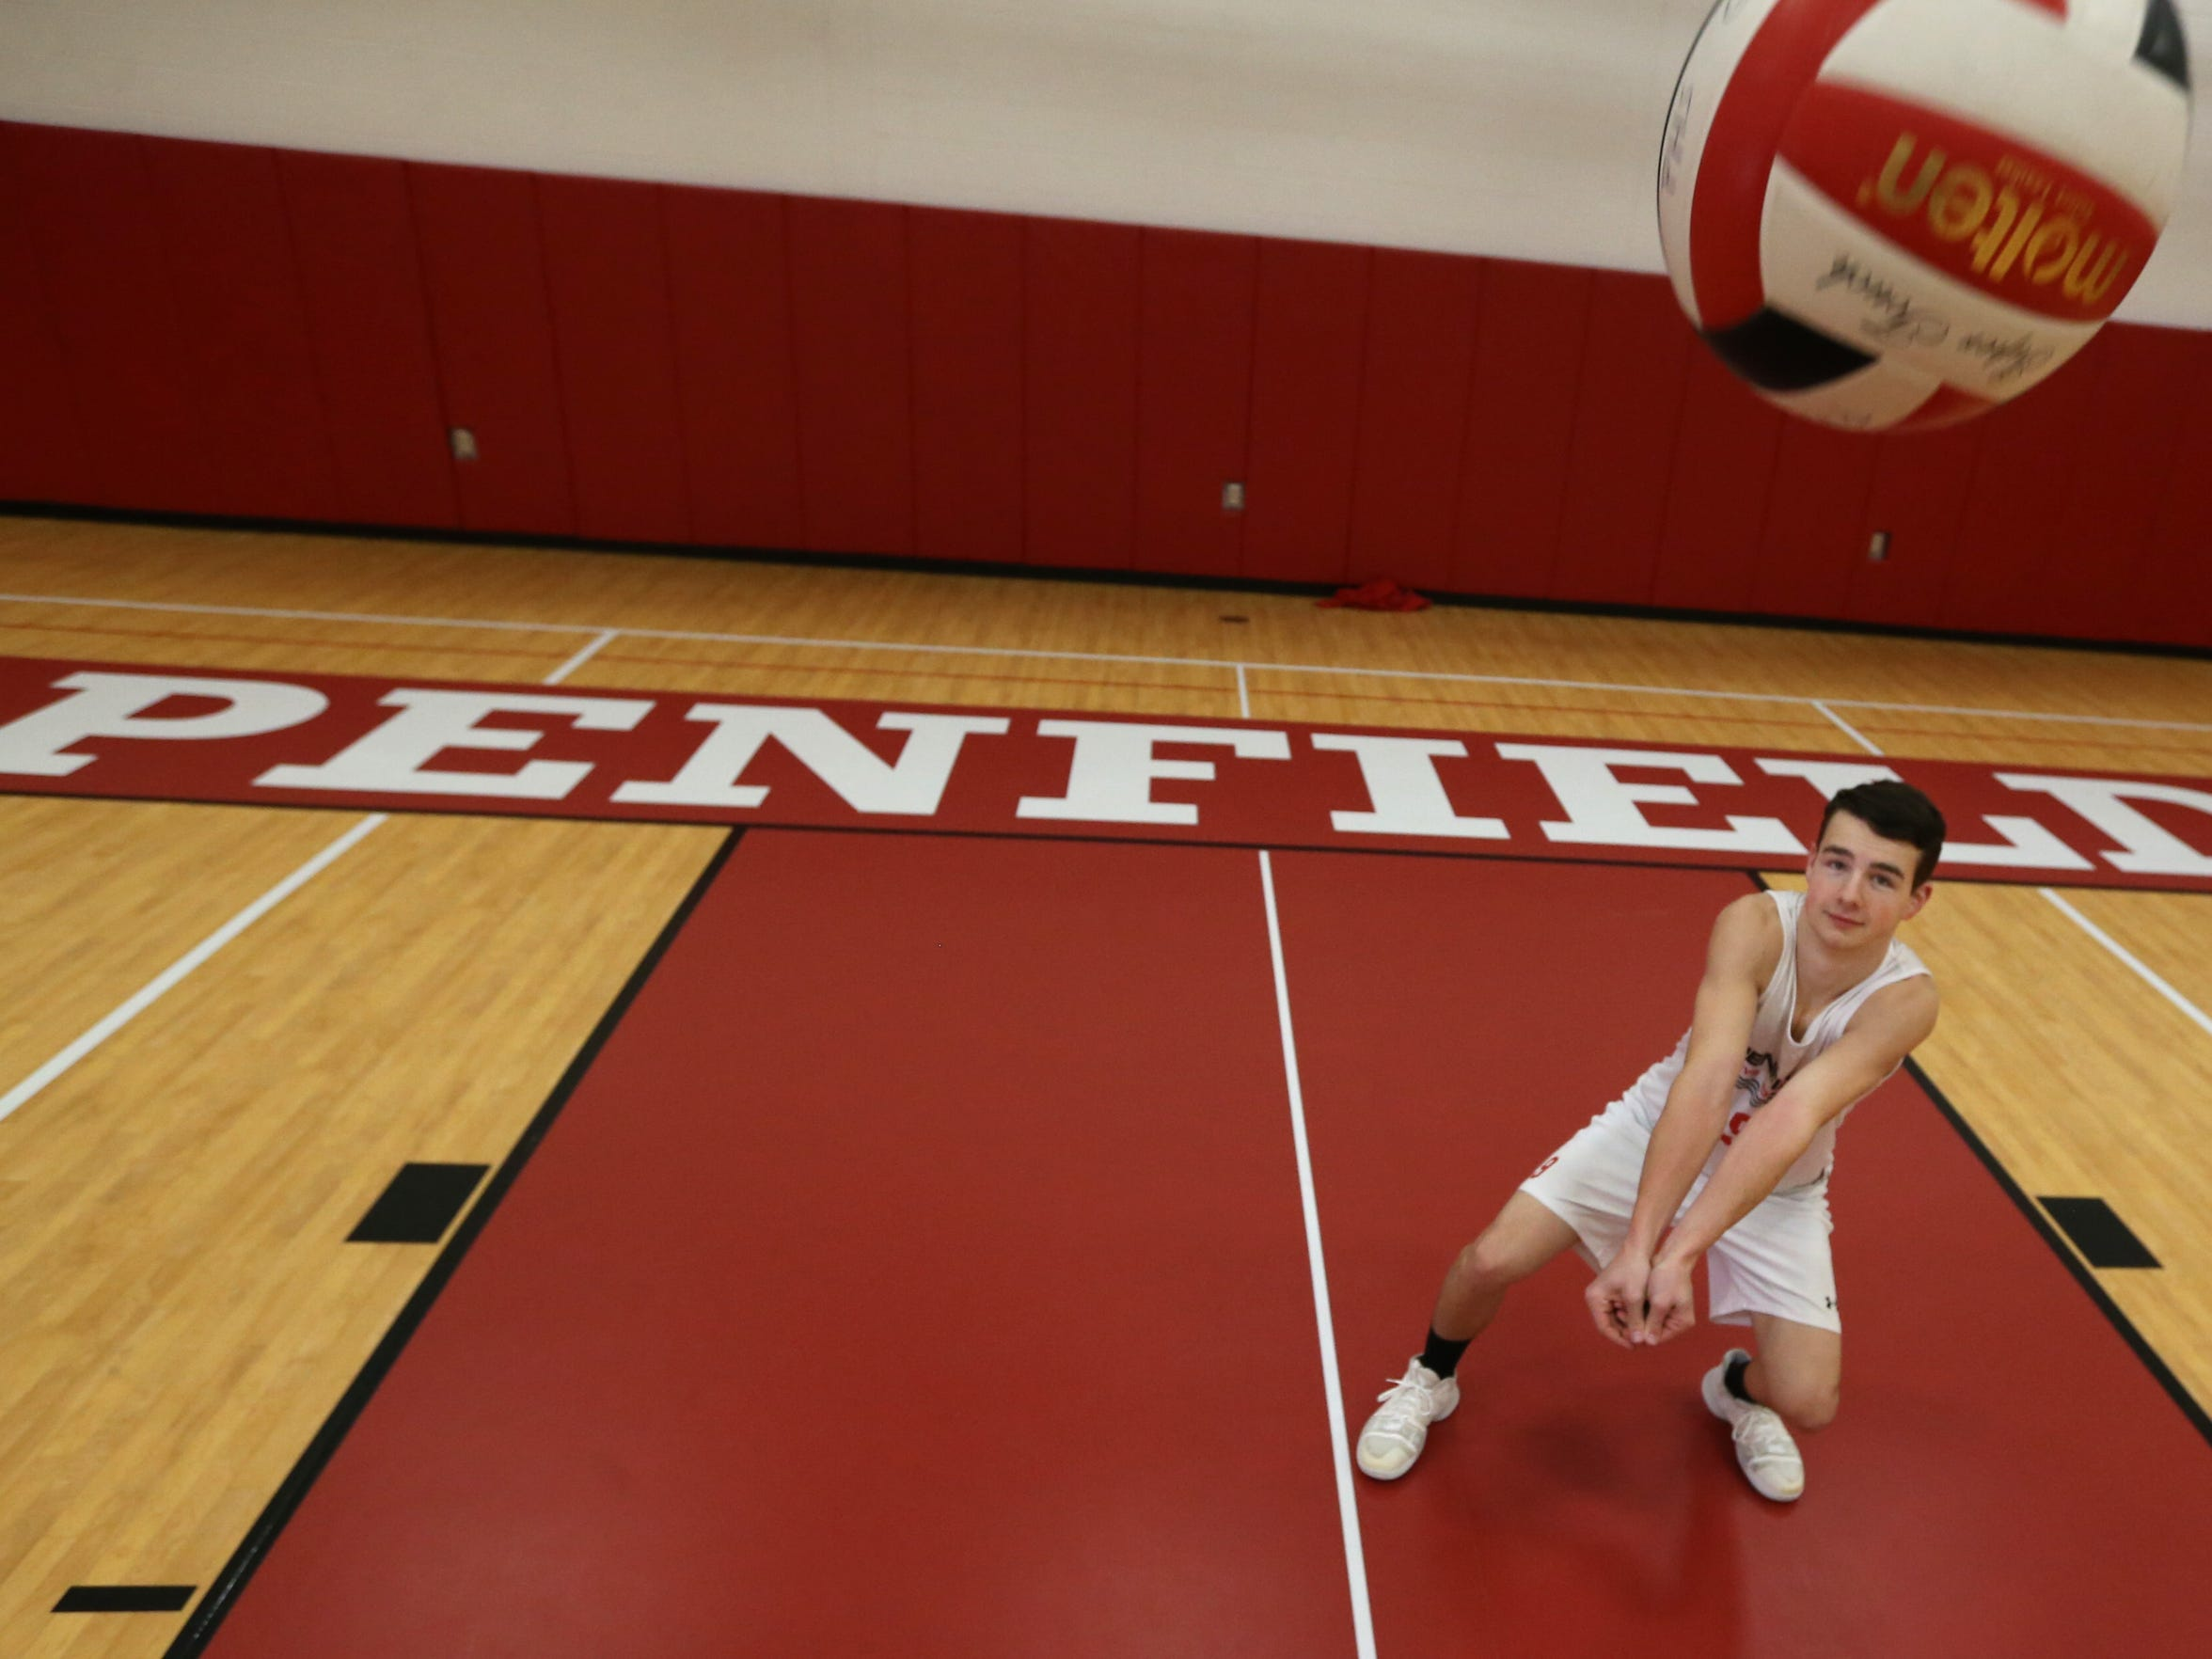 Jett Klintworth, senior at Penfield High School, is the All Greater Rochester boys volleyball player of the year for fall sports, Friday, Dec. 1, 2017.